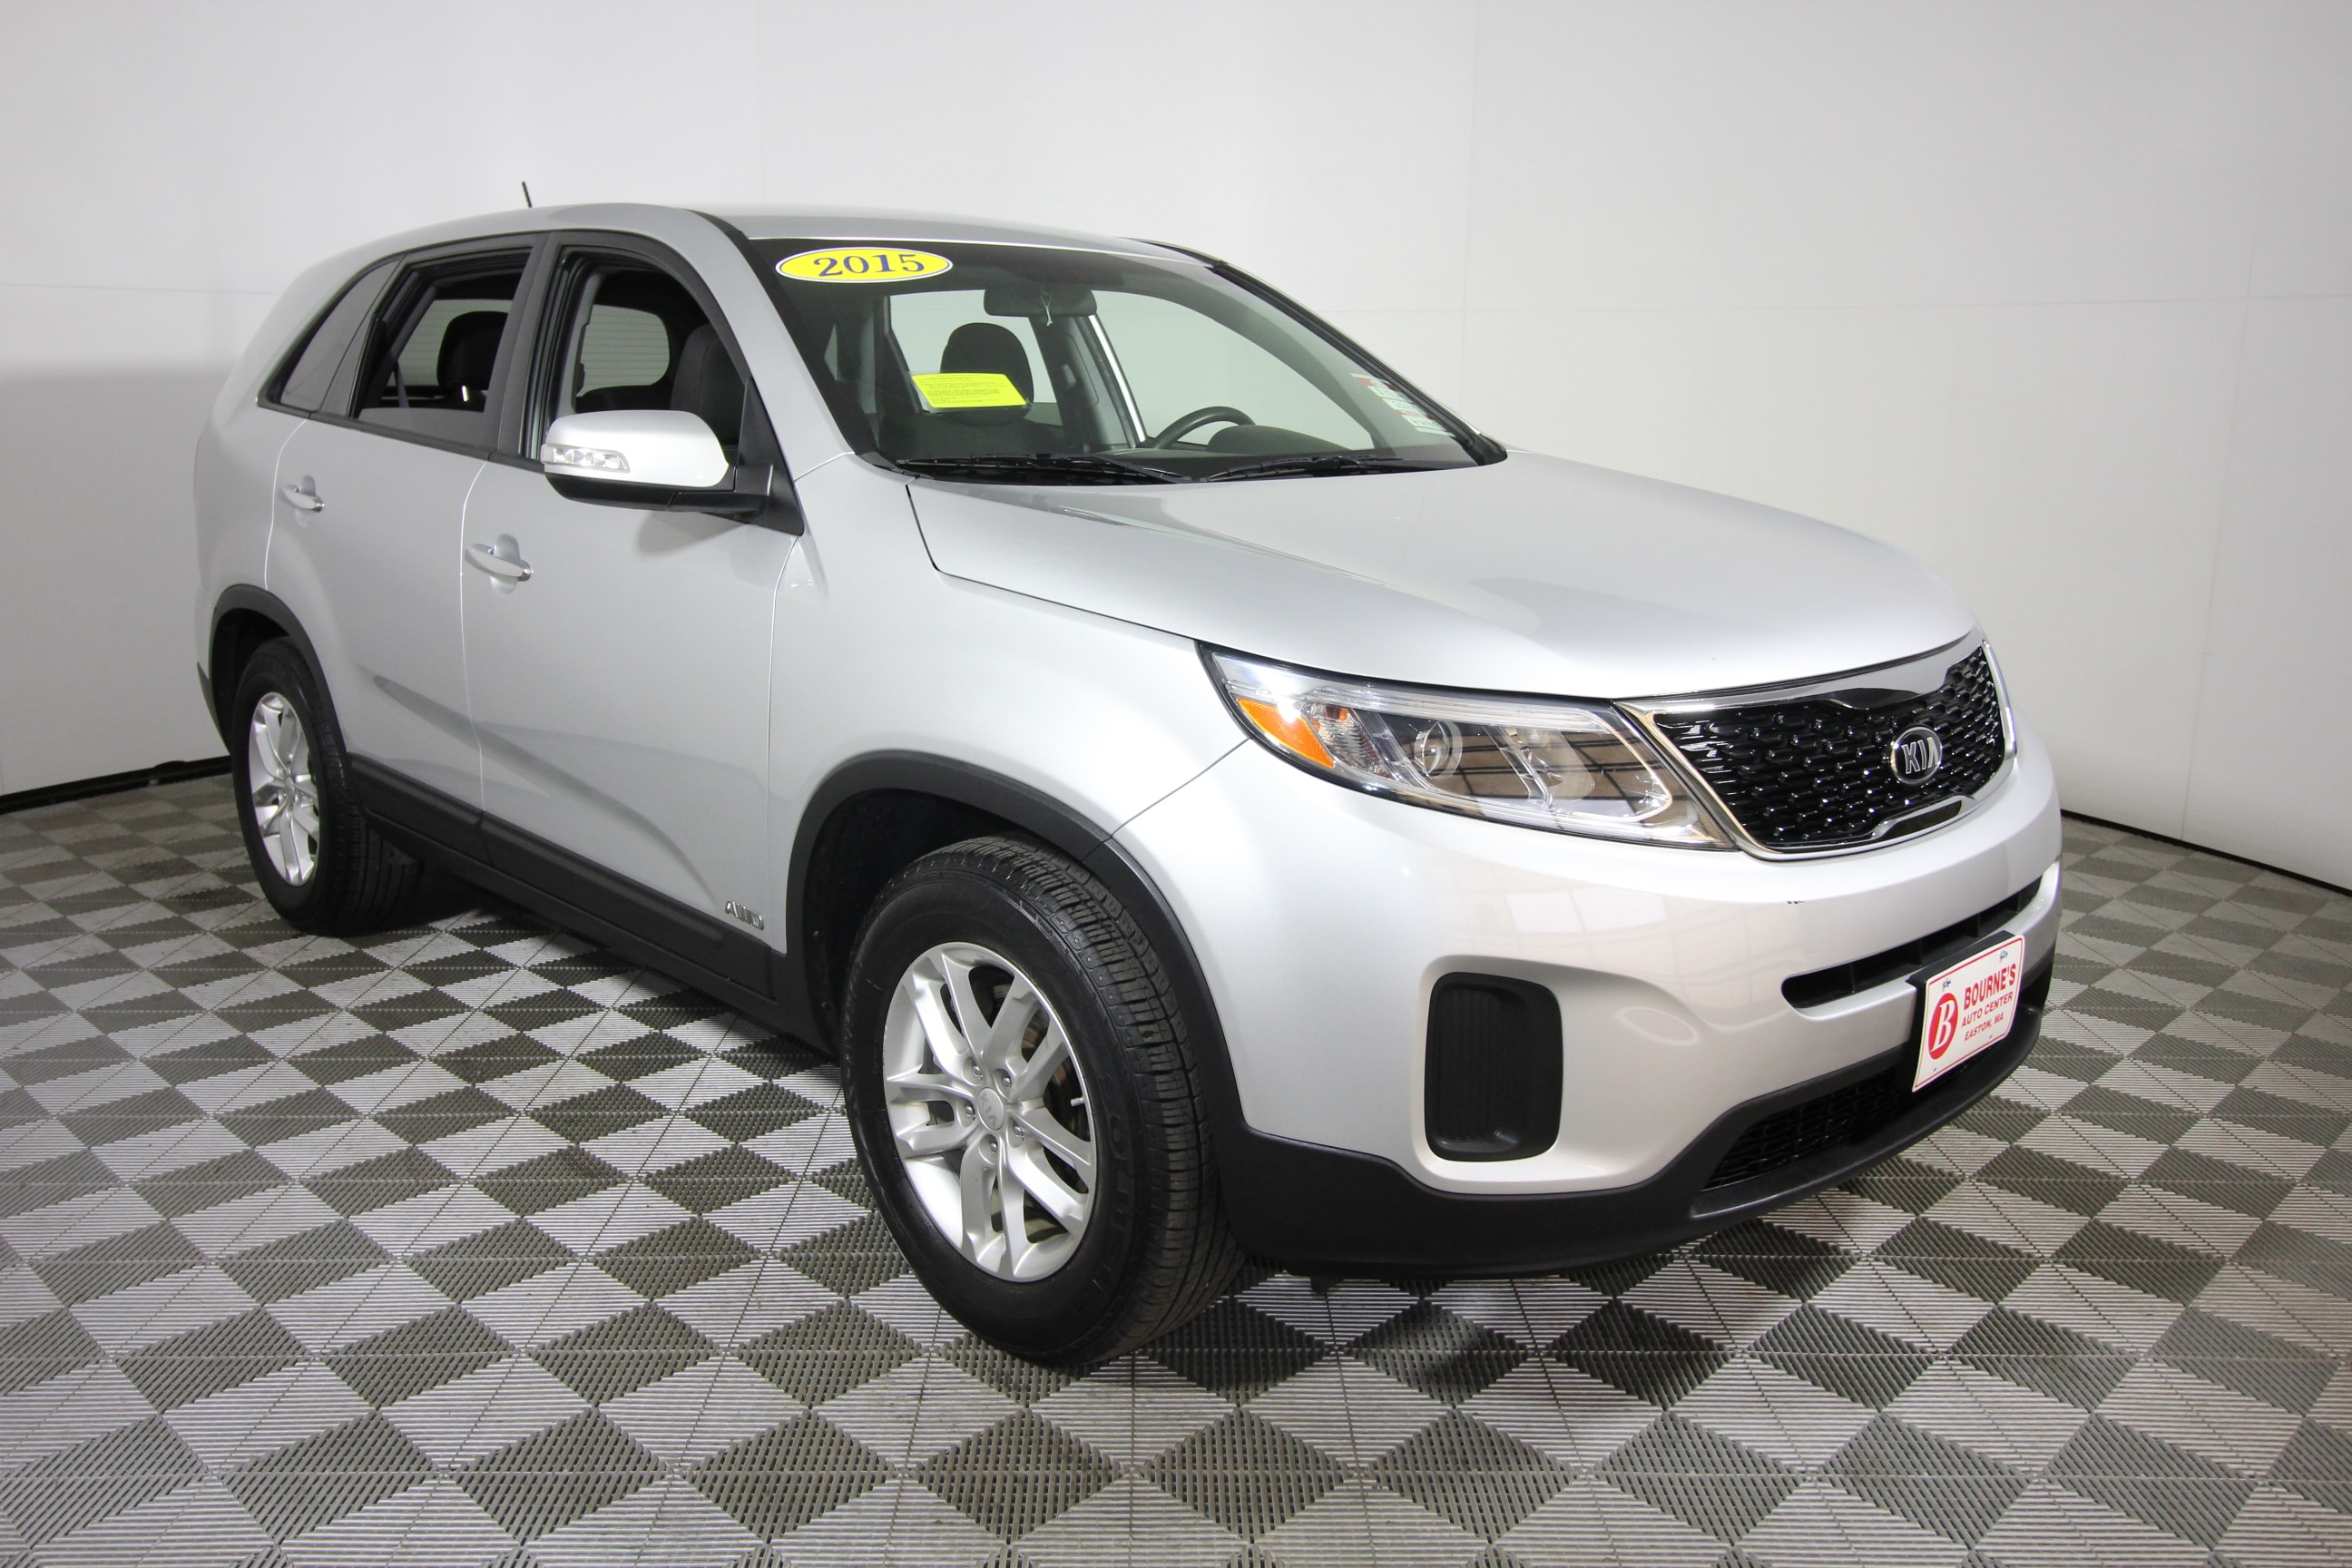 2015 kia sorento used 16490. Black Bedroom Furniture Sets. Home Design Ideas